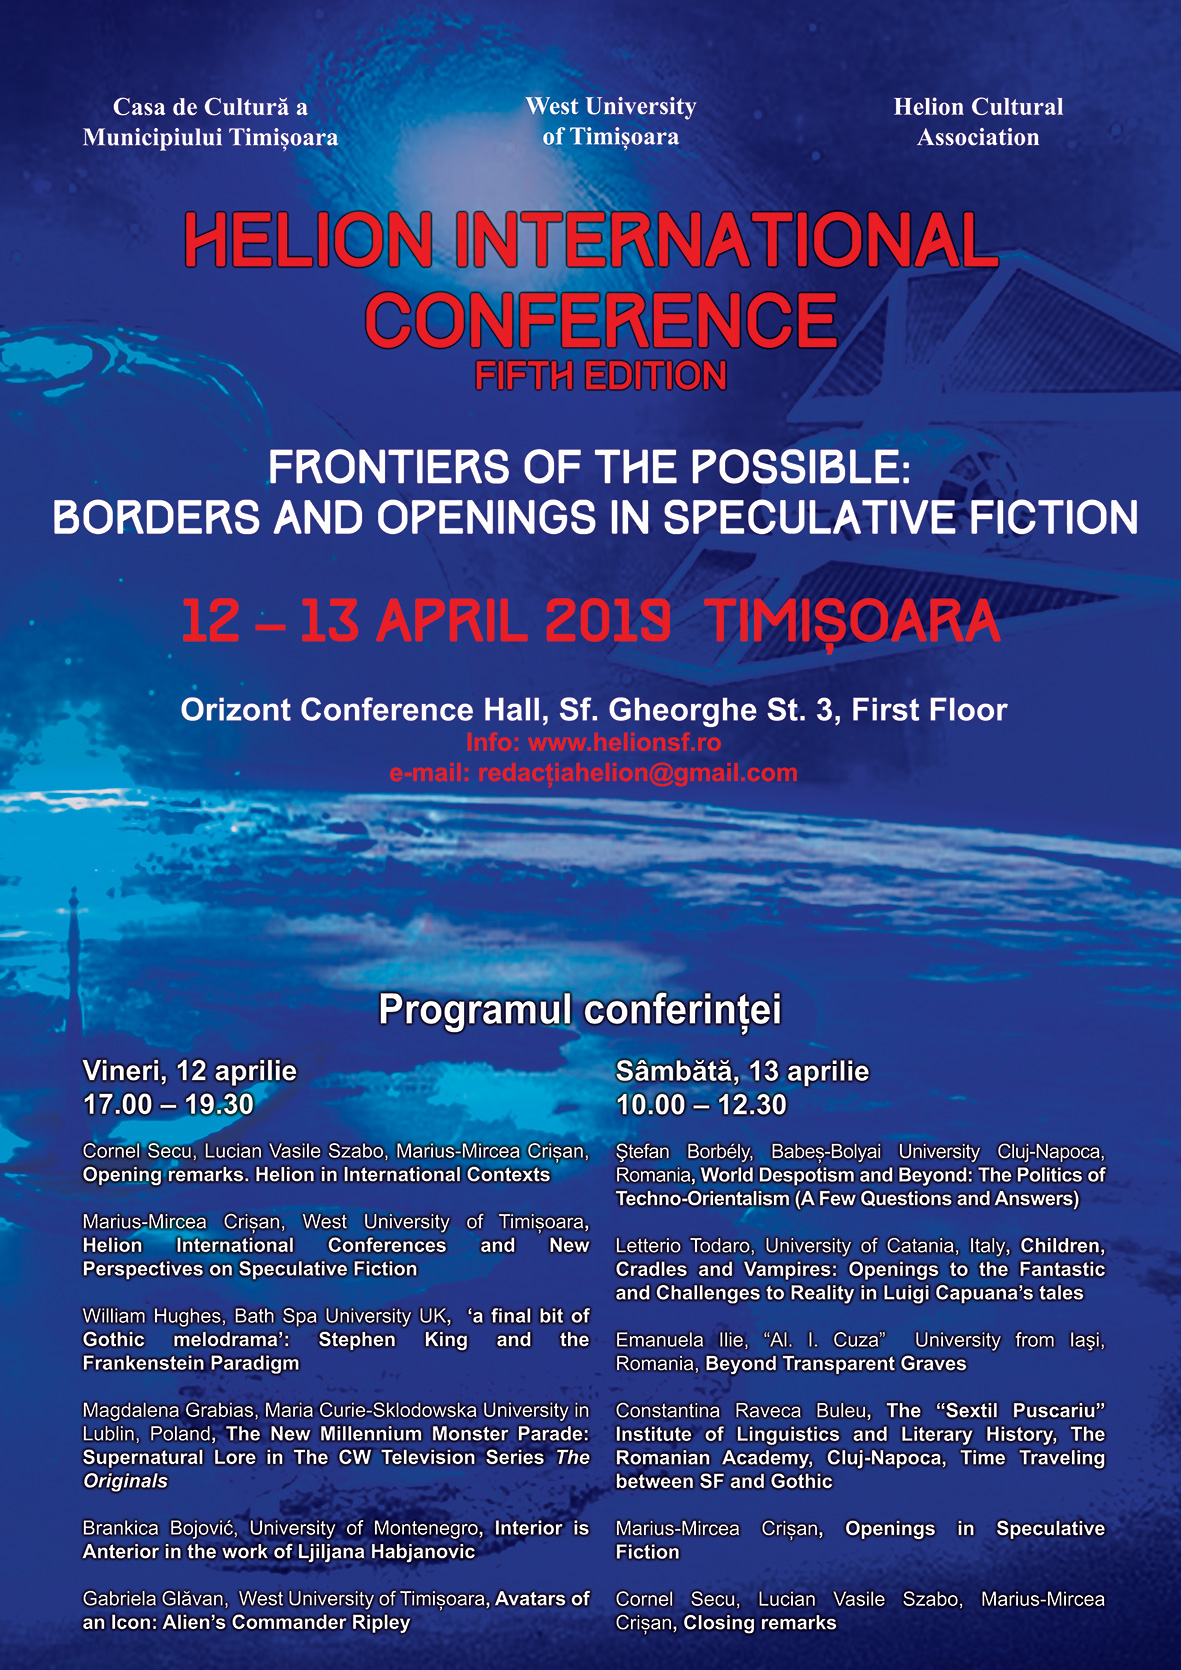 helion-international-conference-fifth-edition